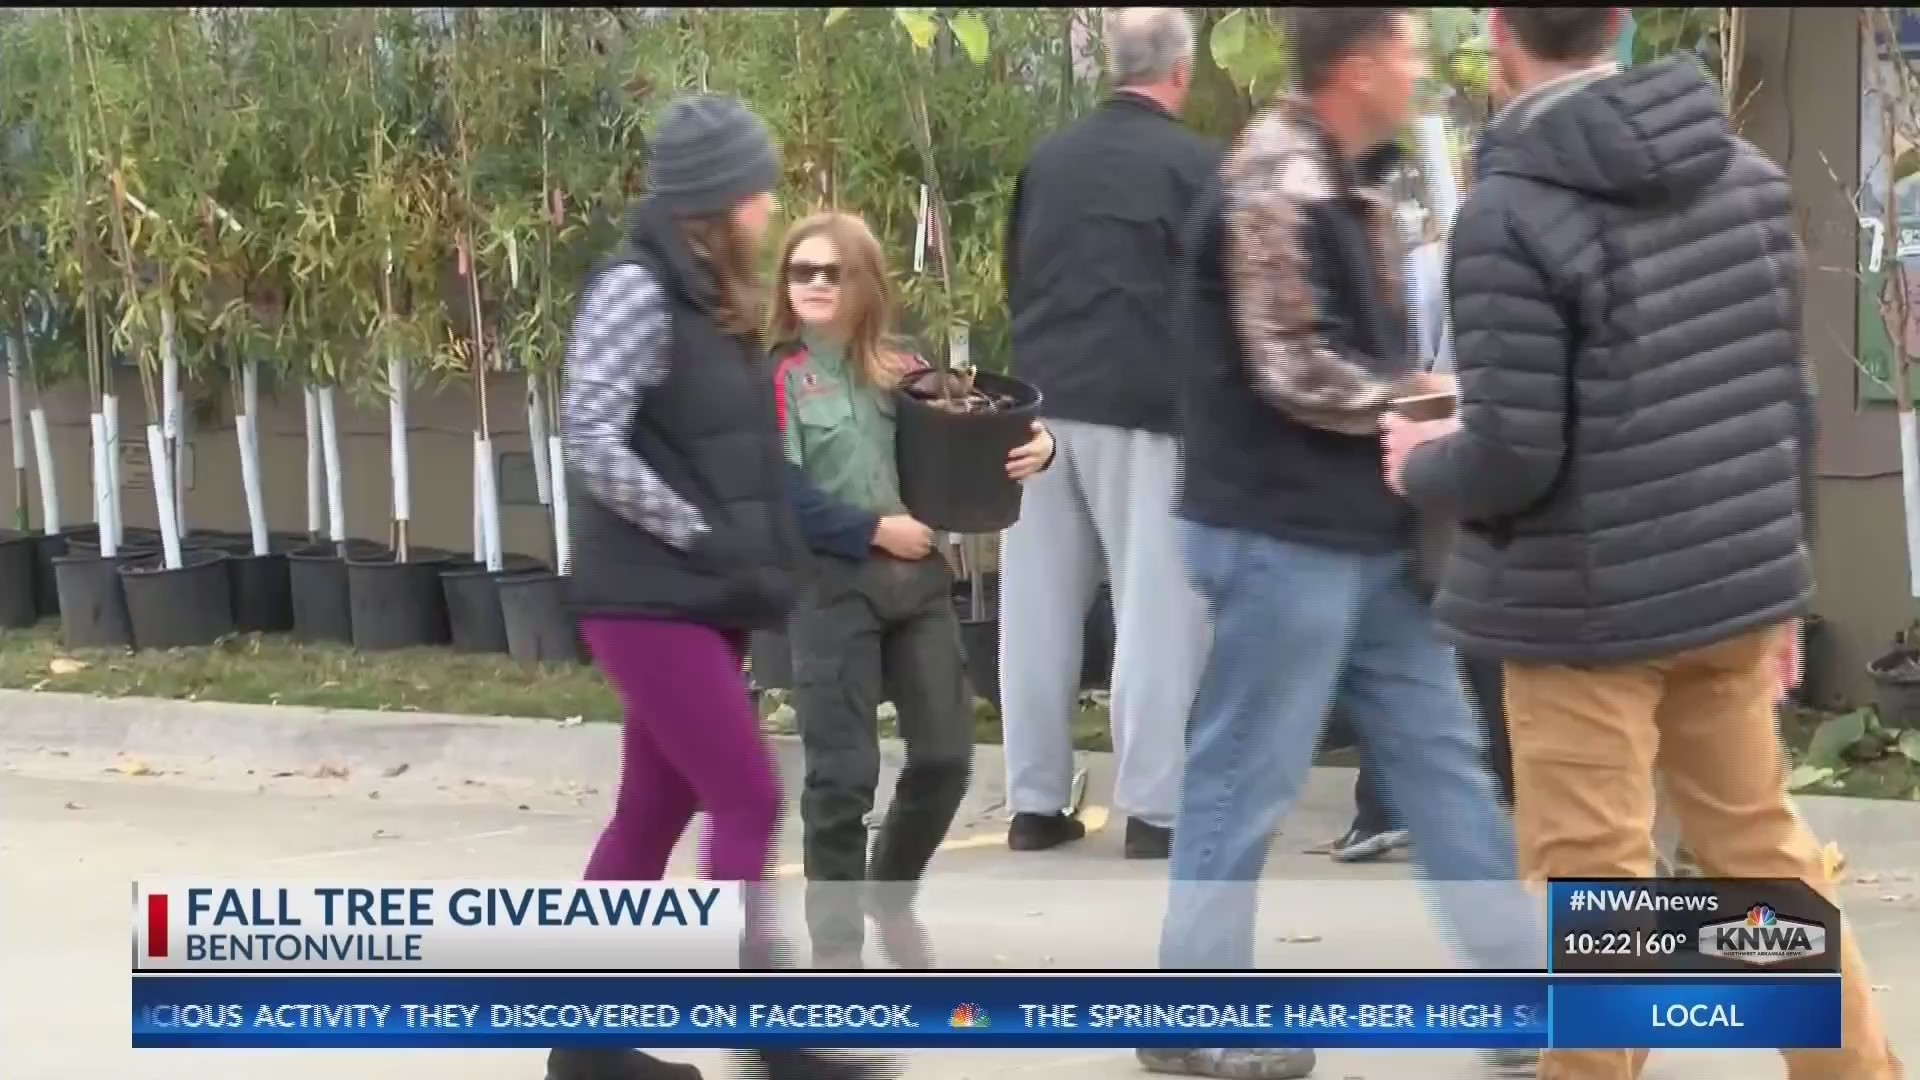 Bentonville_Residents_Received_Free_Tree_0_20181104033012